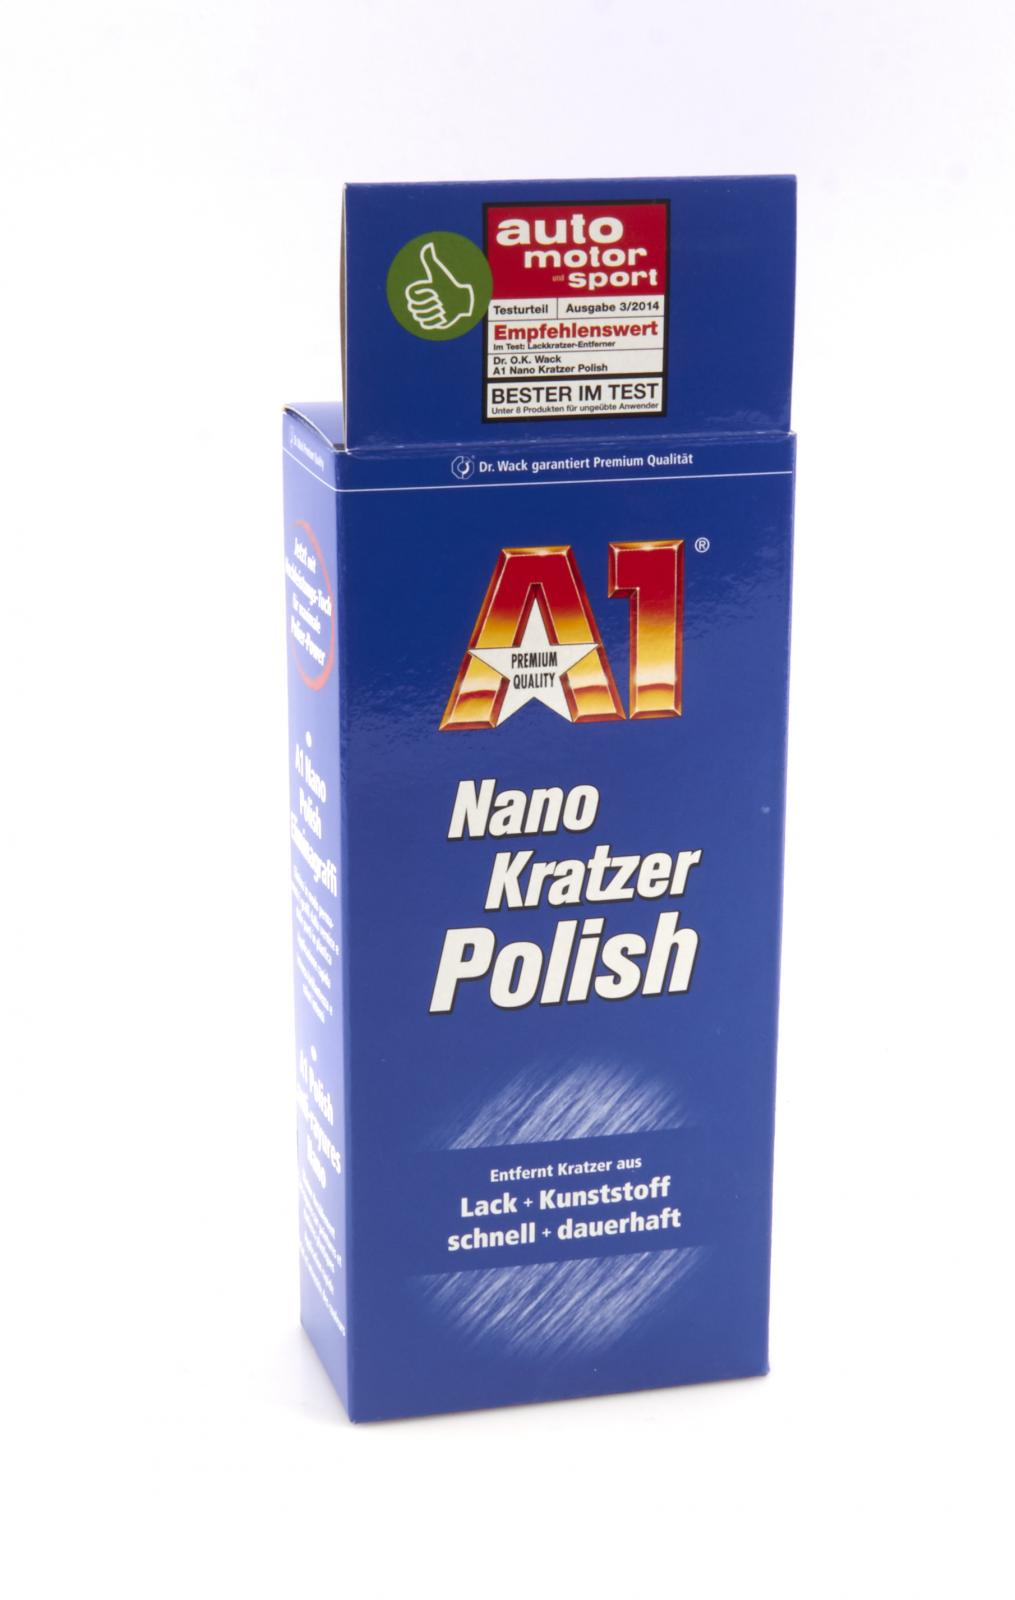 dr o k wack 50ml 2714 a1 nano kratzer polish ebay. Black Bedroom Furniture Sets. Home Design Ideas